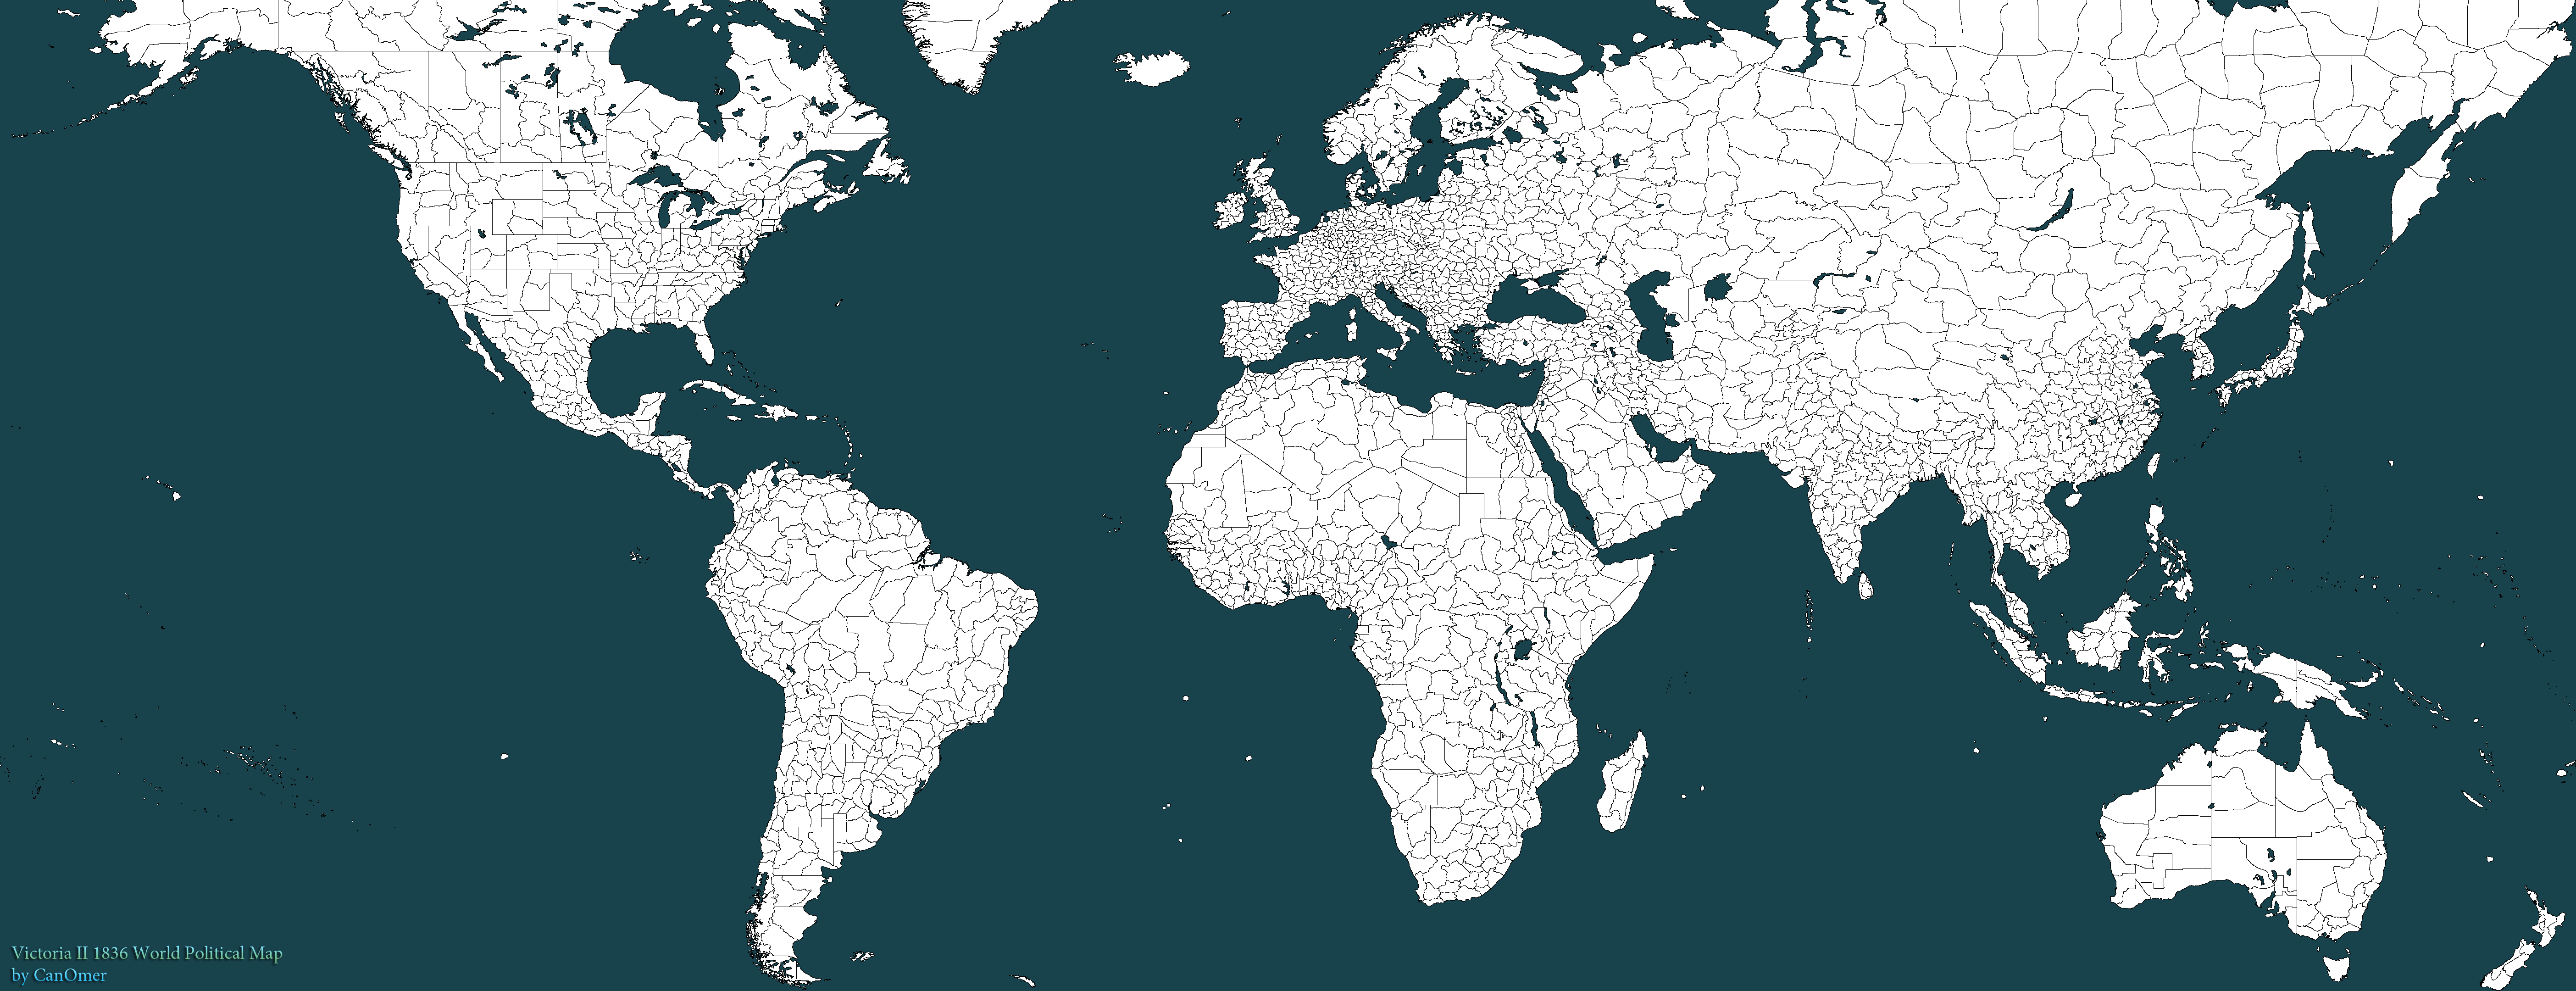 Victoria 2 Map Game   TheFutureOfEuropes Wiki   FANDOM powered by Wikia